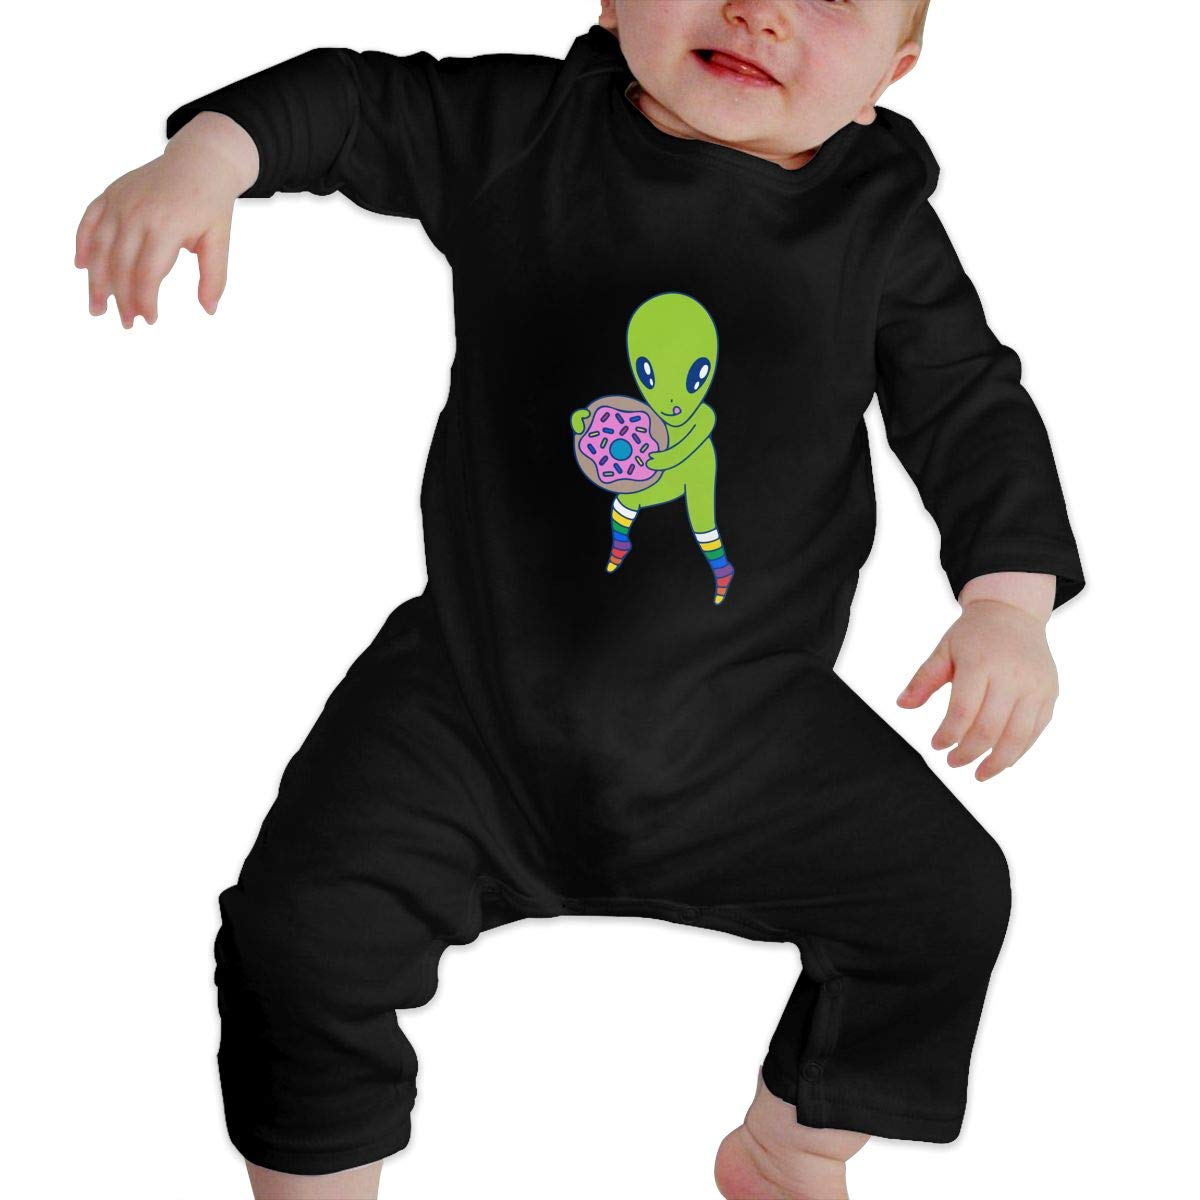 Mri-le1 Newborn Baby Jumpsuit Alien with Donut Baby Clothes